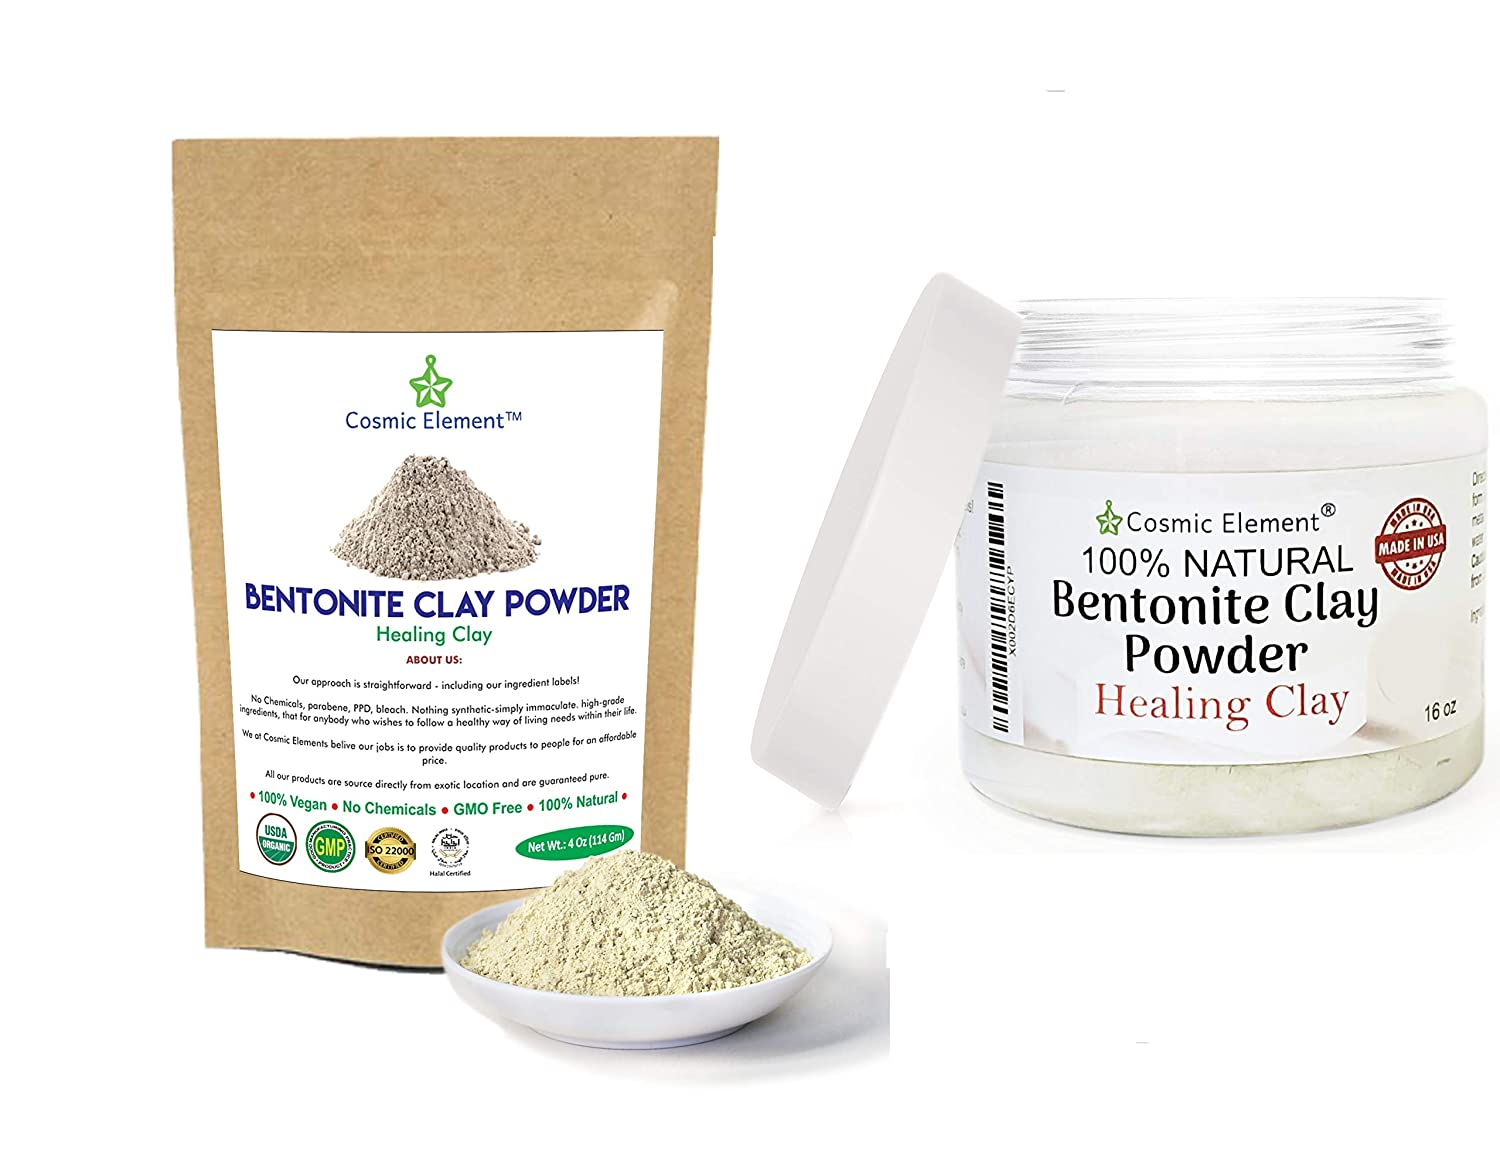 Cosmic Element Bentonite Clay Powder 100% Pure & Unrefined 4 and 16 Ounce Bundle Pack Premium Food Grade Calcium Bentonite Clay - Heavy Metal Detox and Cleanse